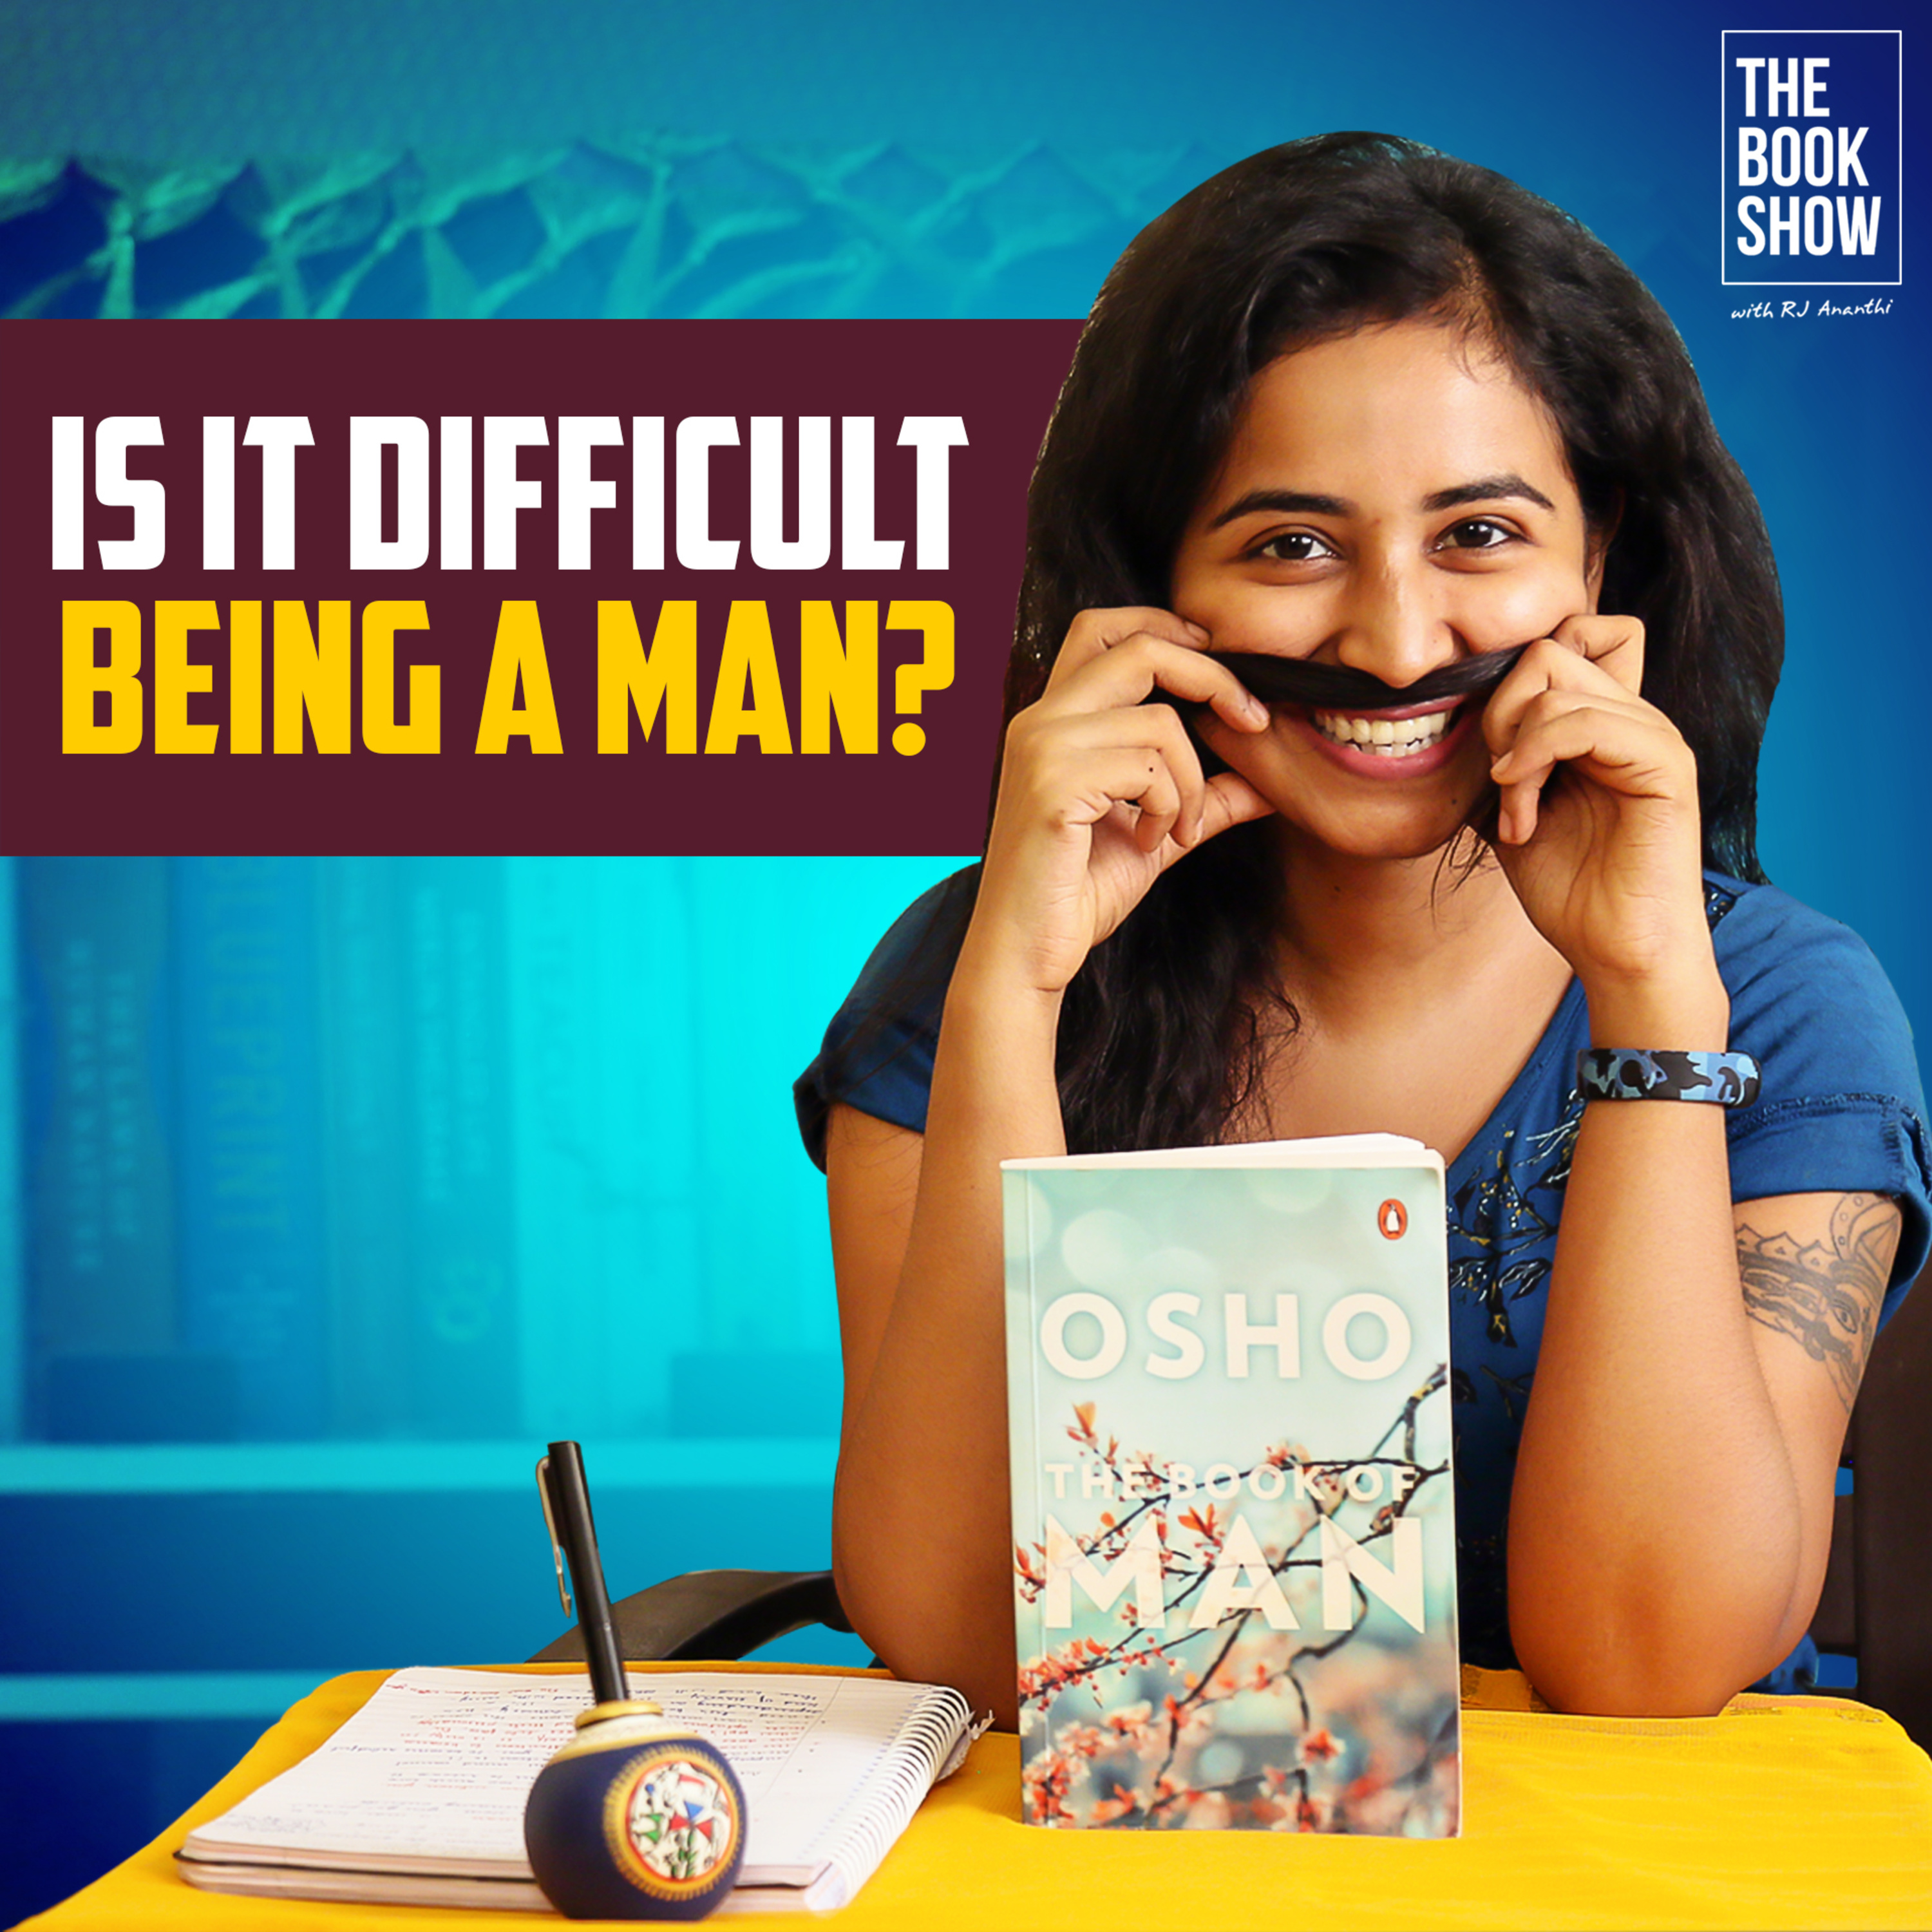 Is It Difficult Being A Man?   OSHO - Book of Man   The Book Show ft. RJ Ananthi